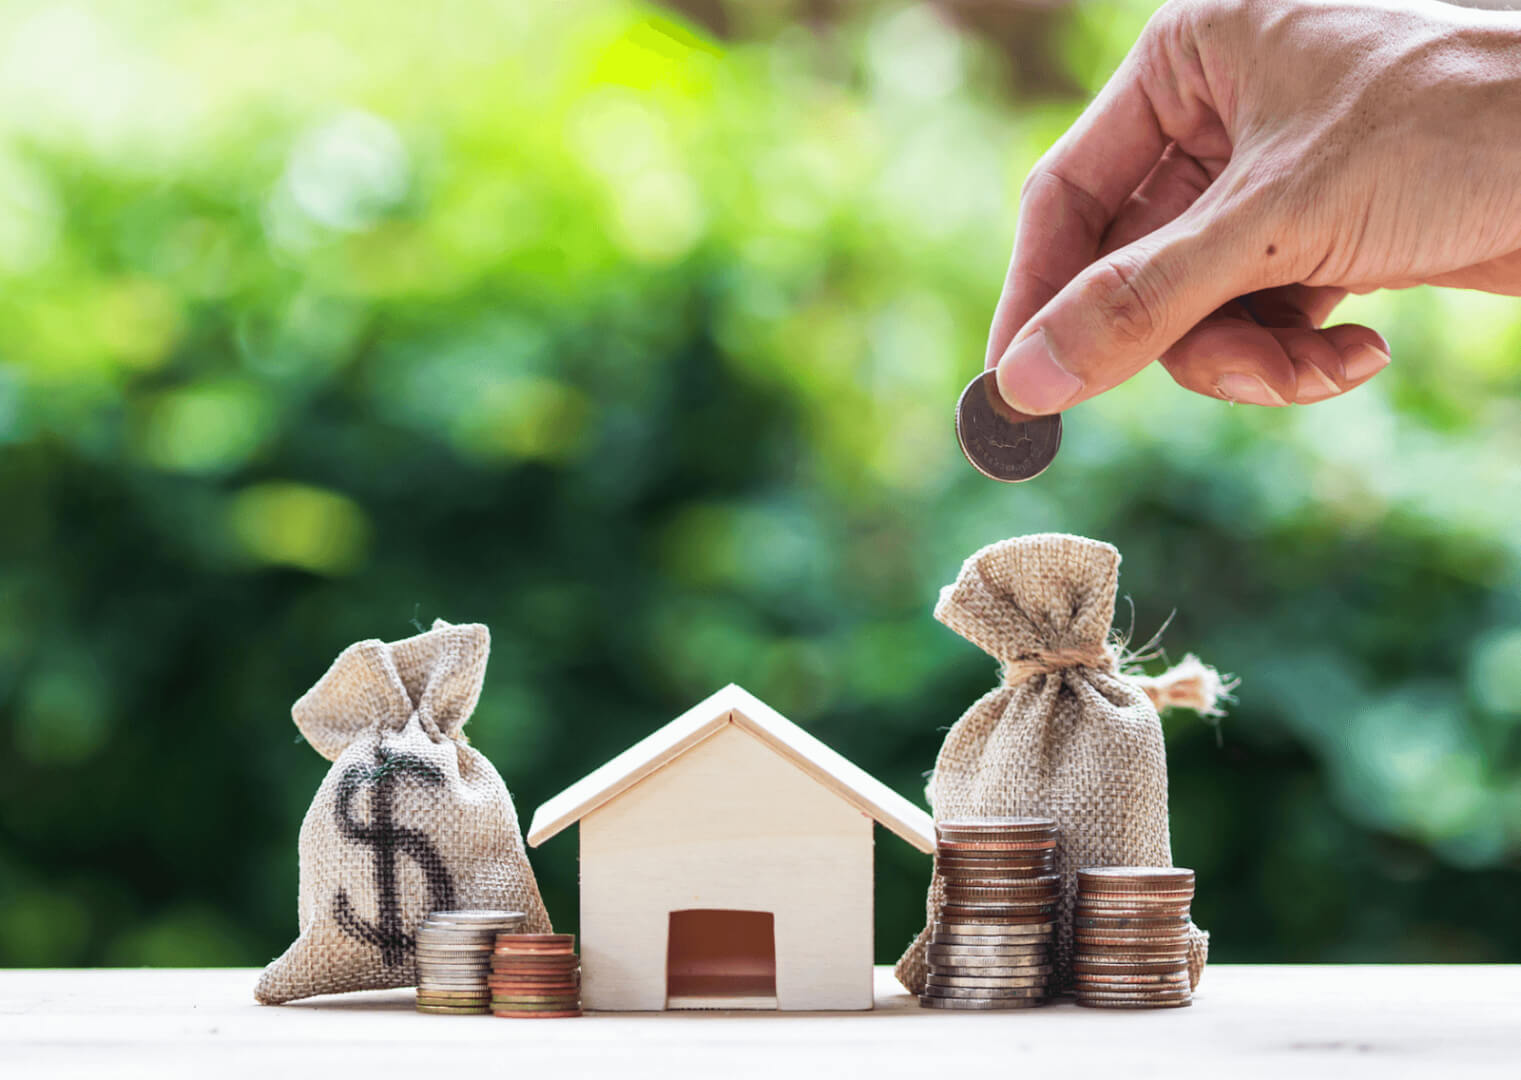 3 Key Elements For A Successful CCR Investment